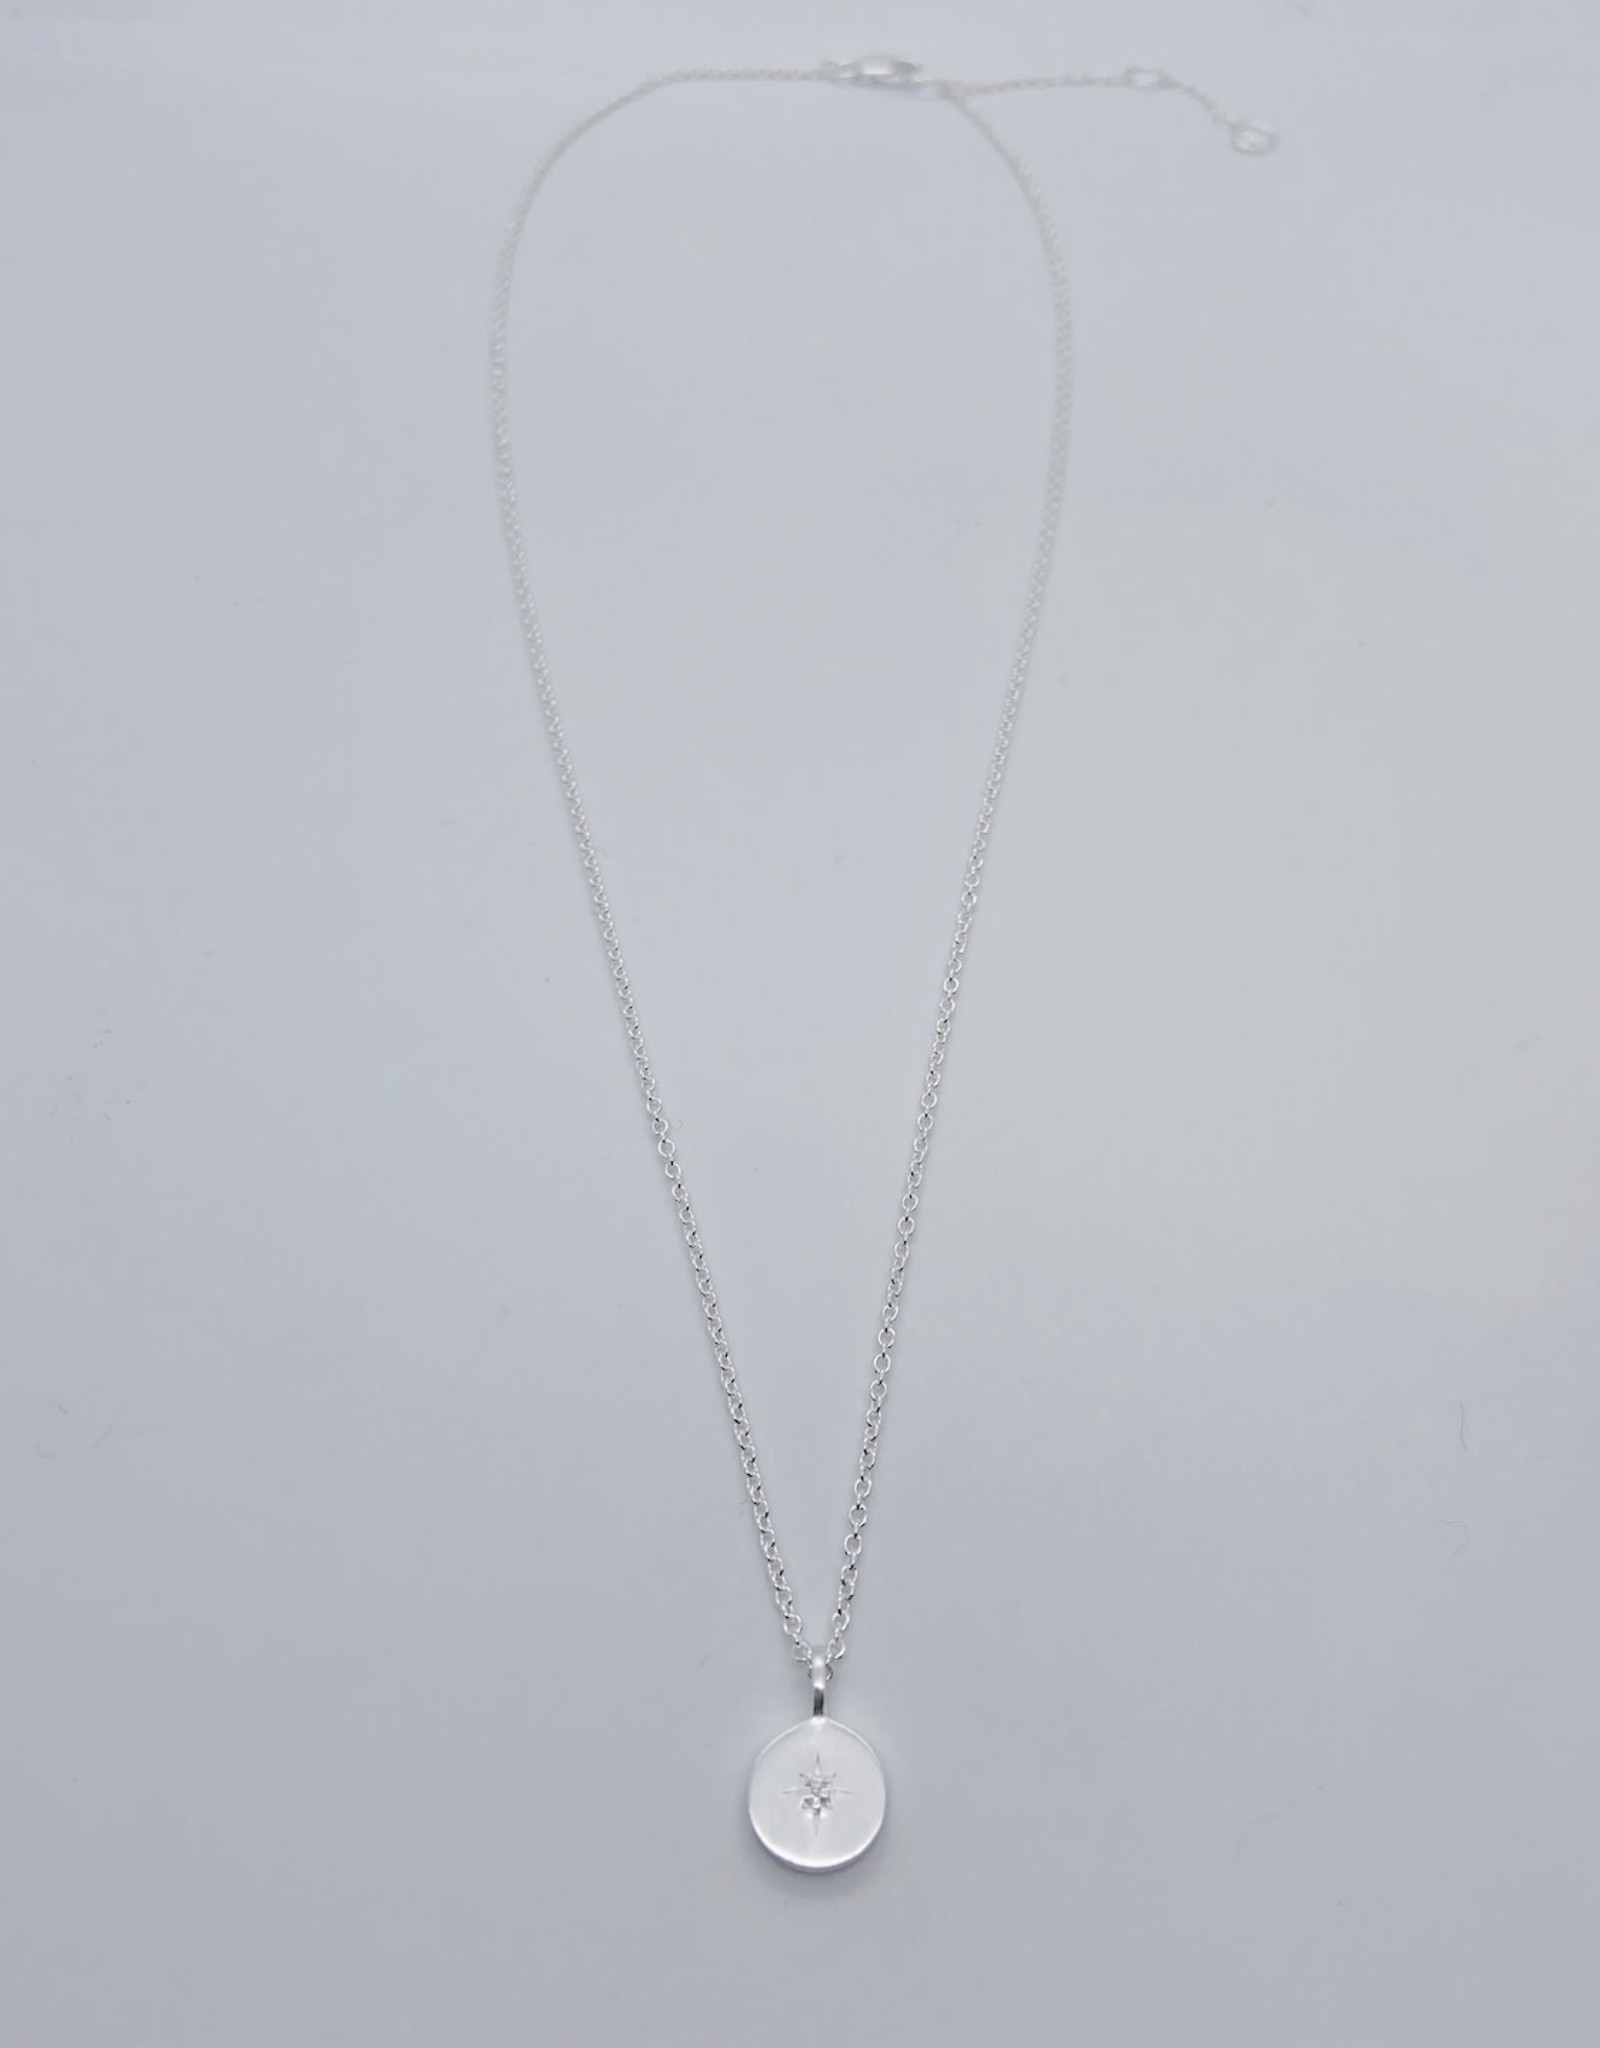 Brushed Sterling Silver Disc with star-set cz necklace